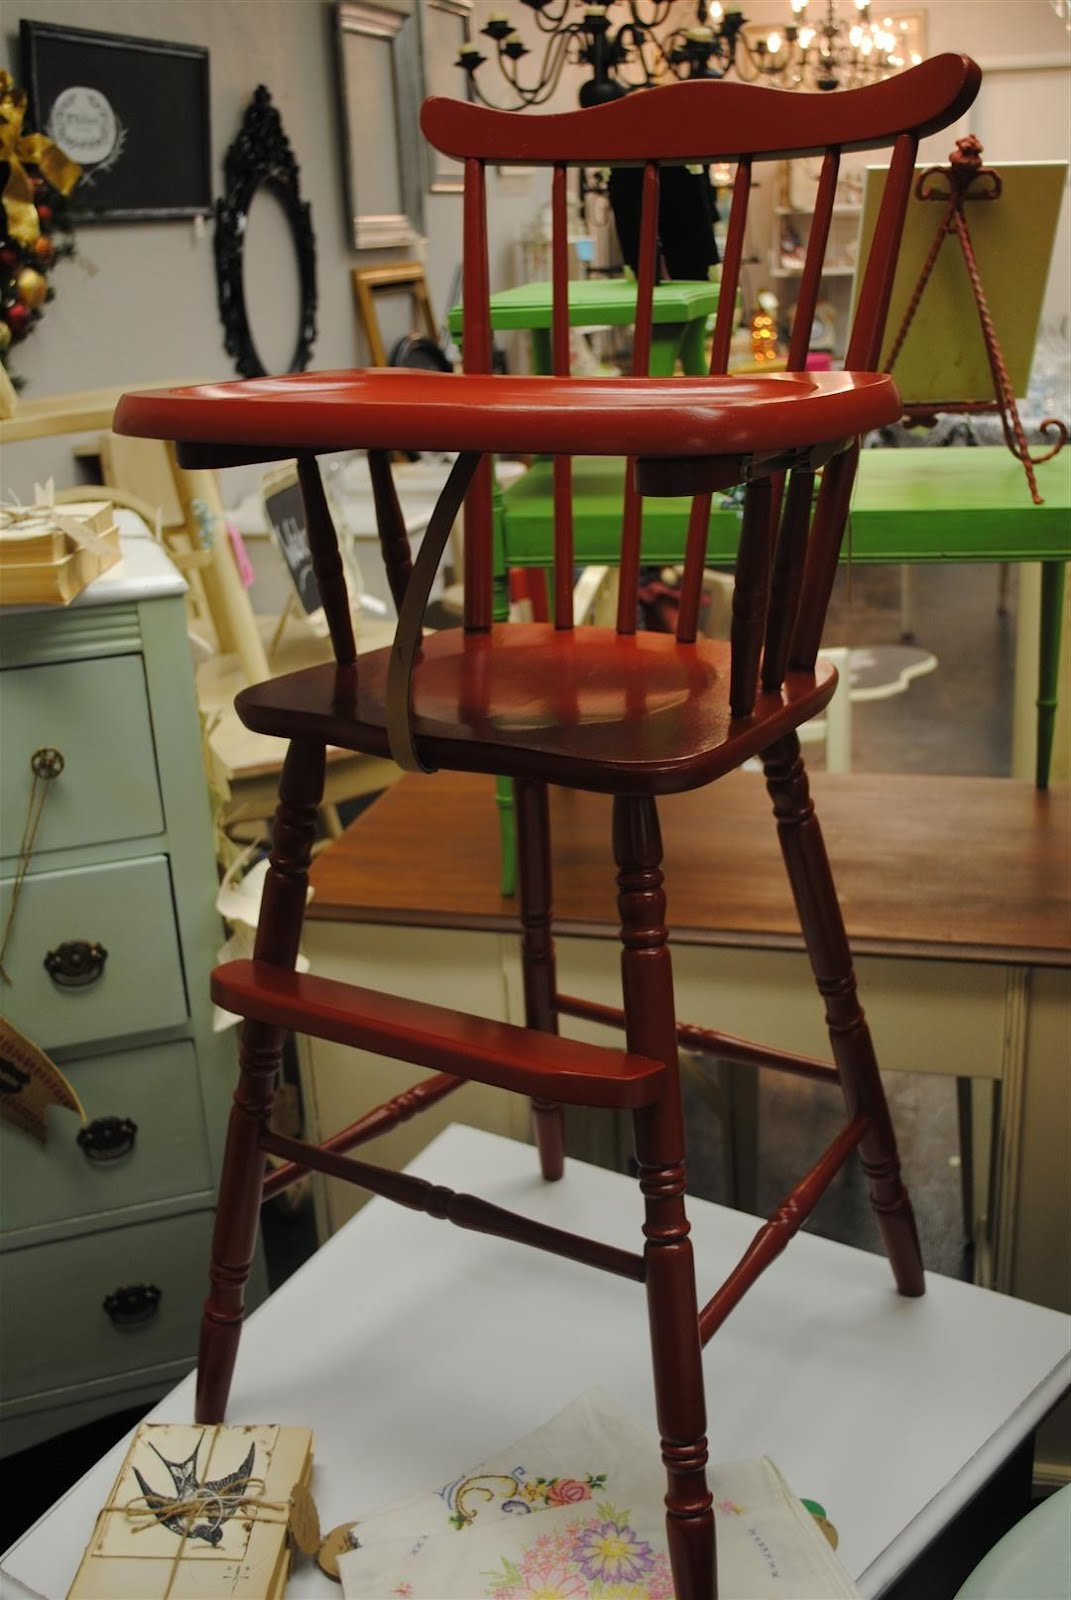 Painted wooden high chairs - Monday January 23 2012